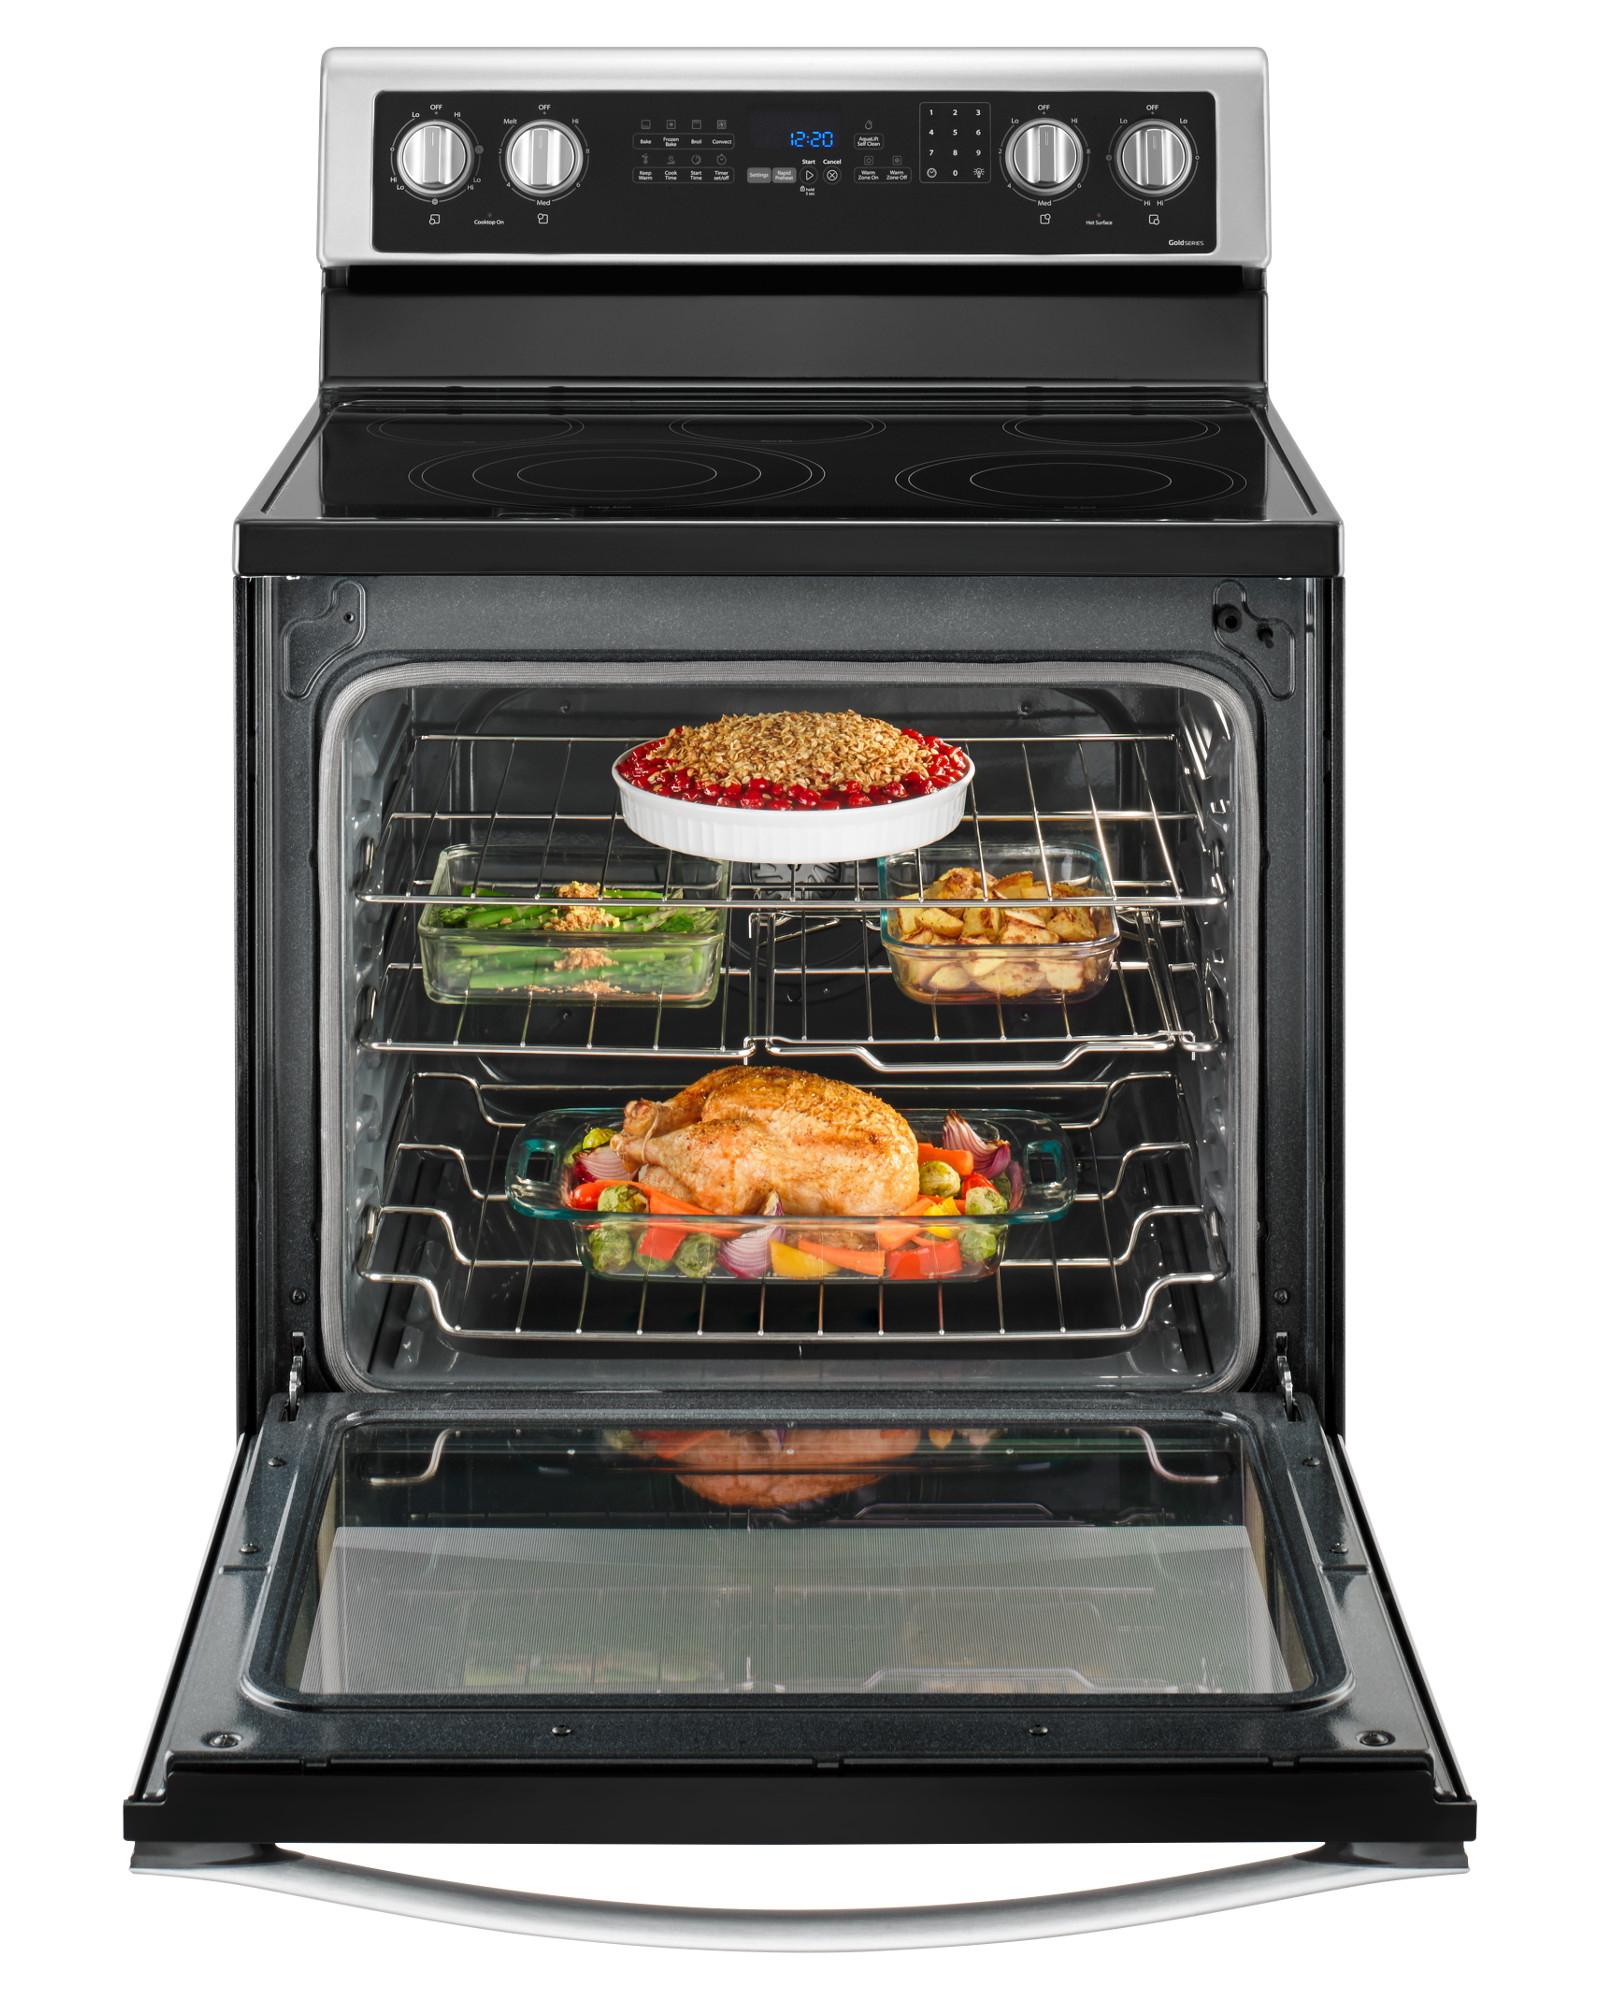 Whirlpool WFE745H0FS 6.4 cu. ft. Electric Range with True Convection - Stainless Steel